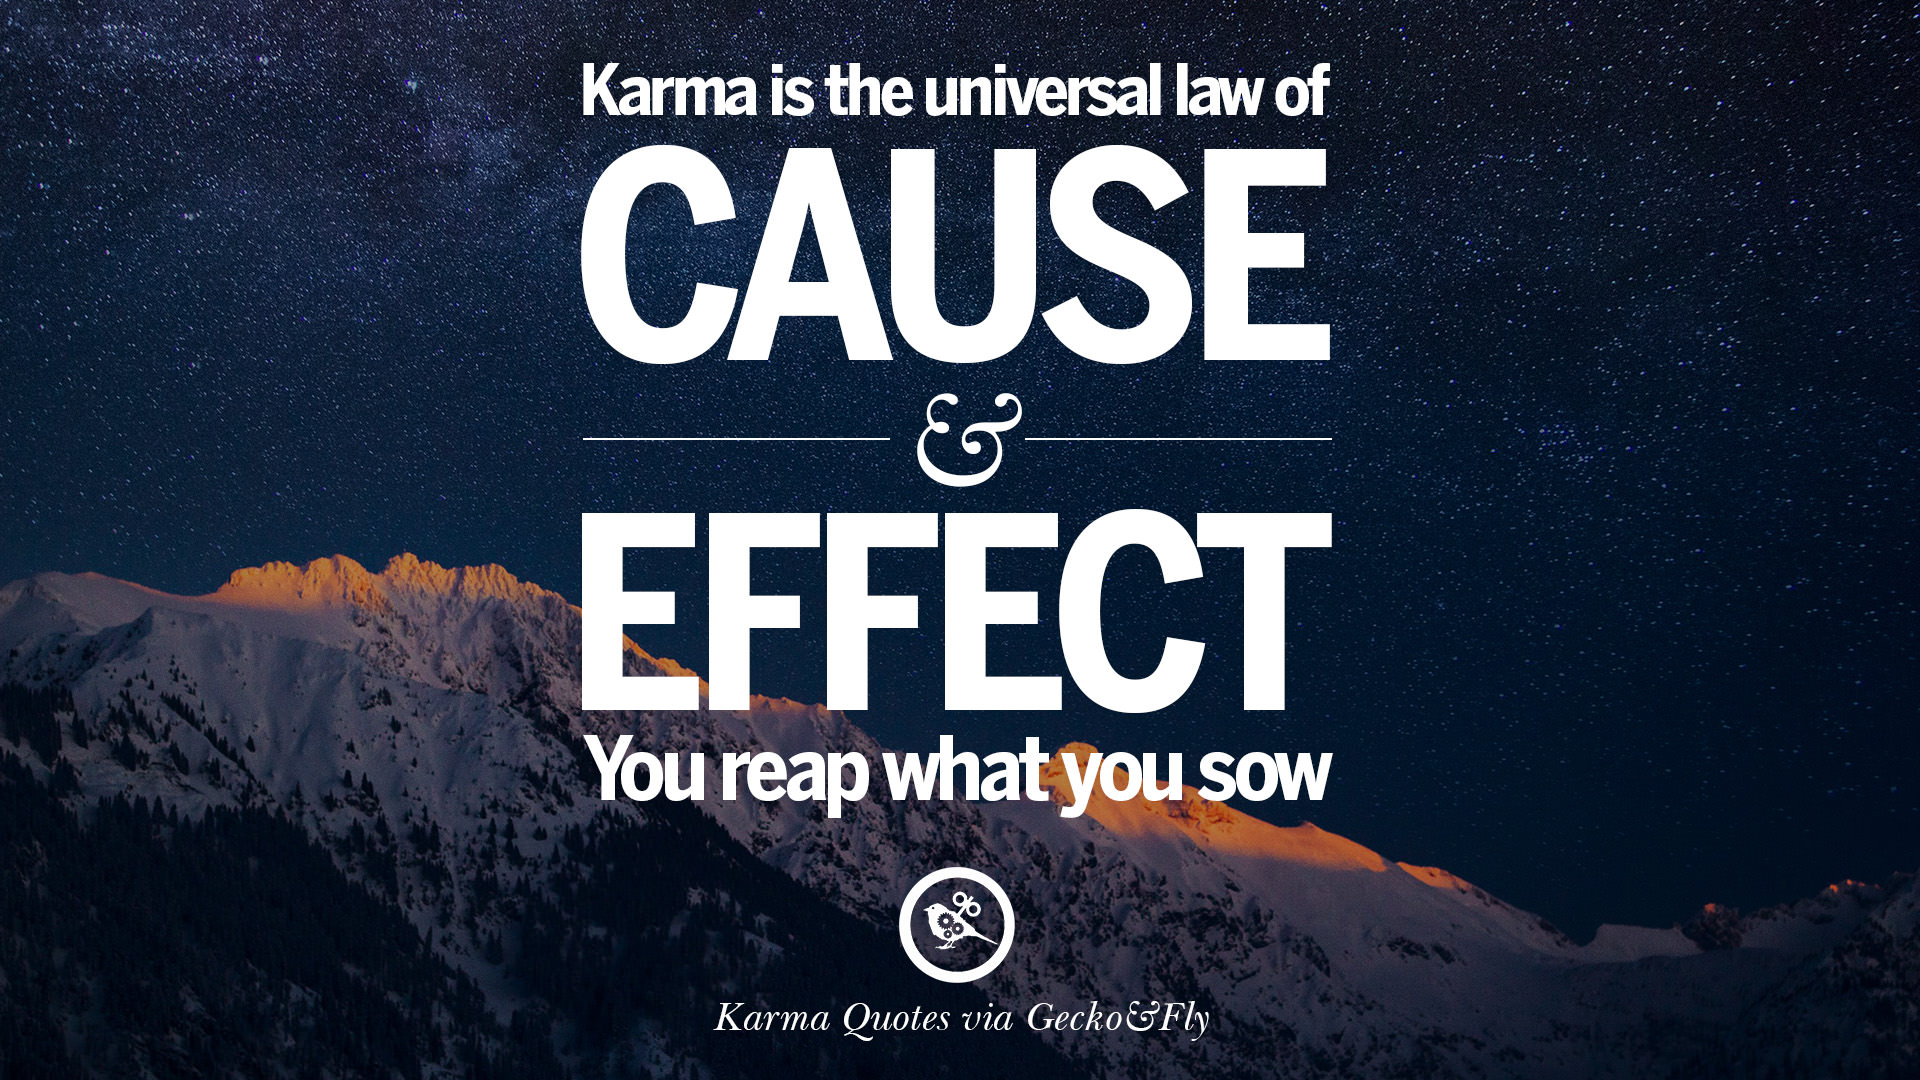 Funny Quotes About Life 18 Good Karma Quotes On Relationship Revenge And Life